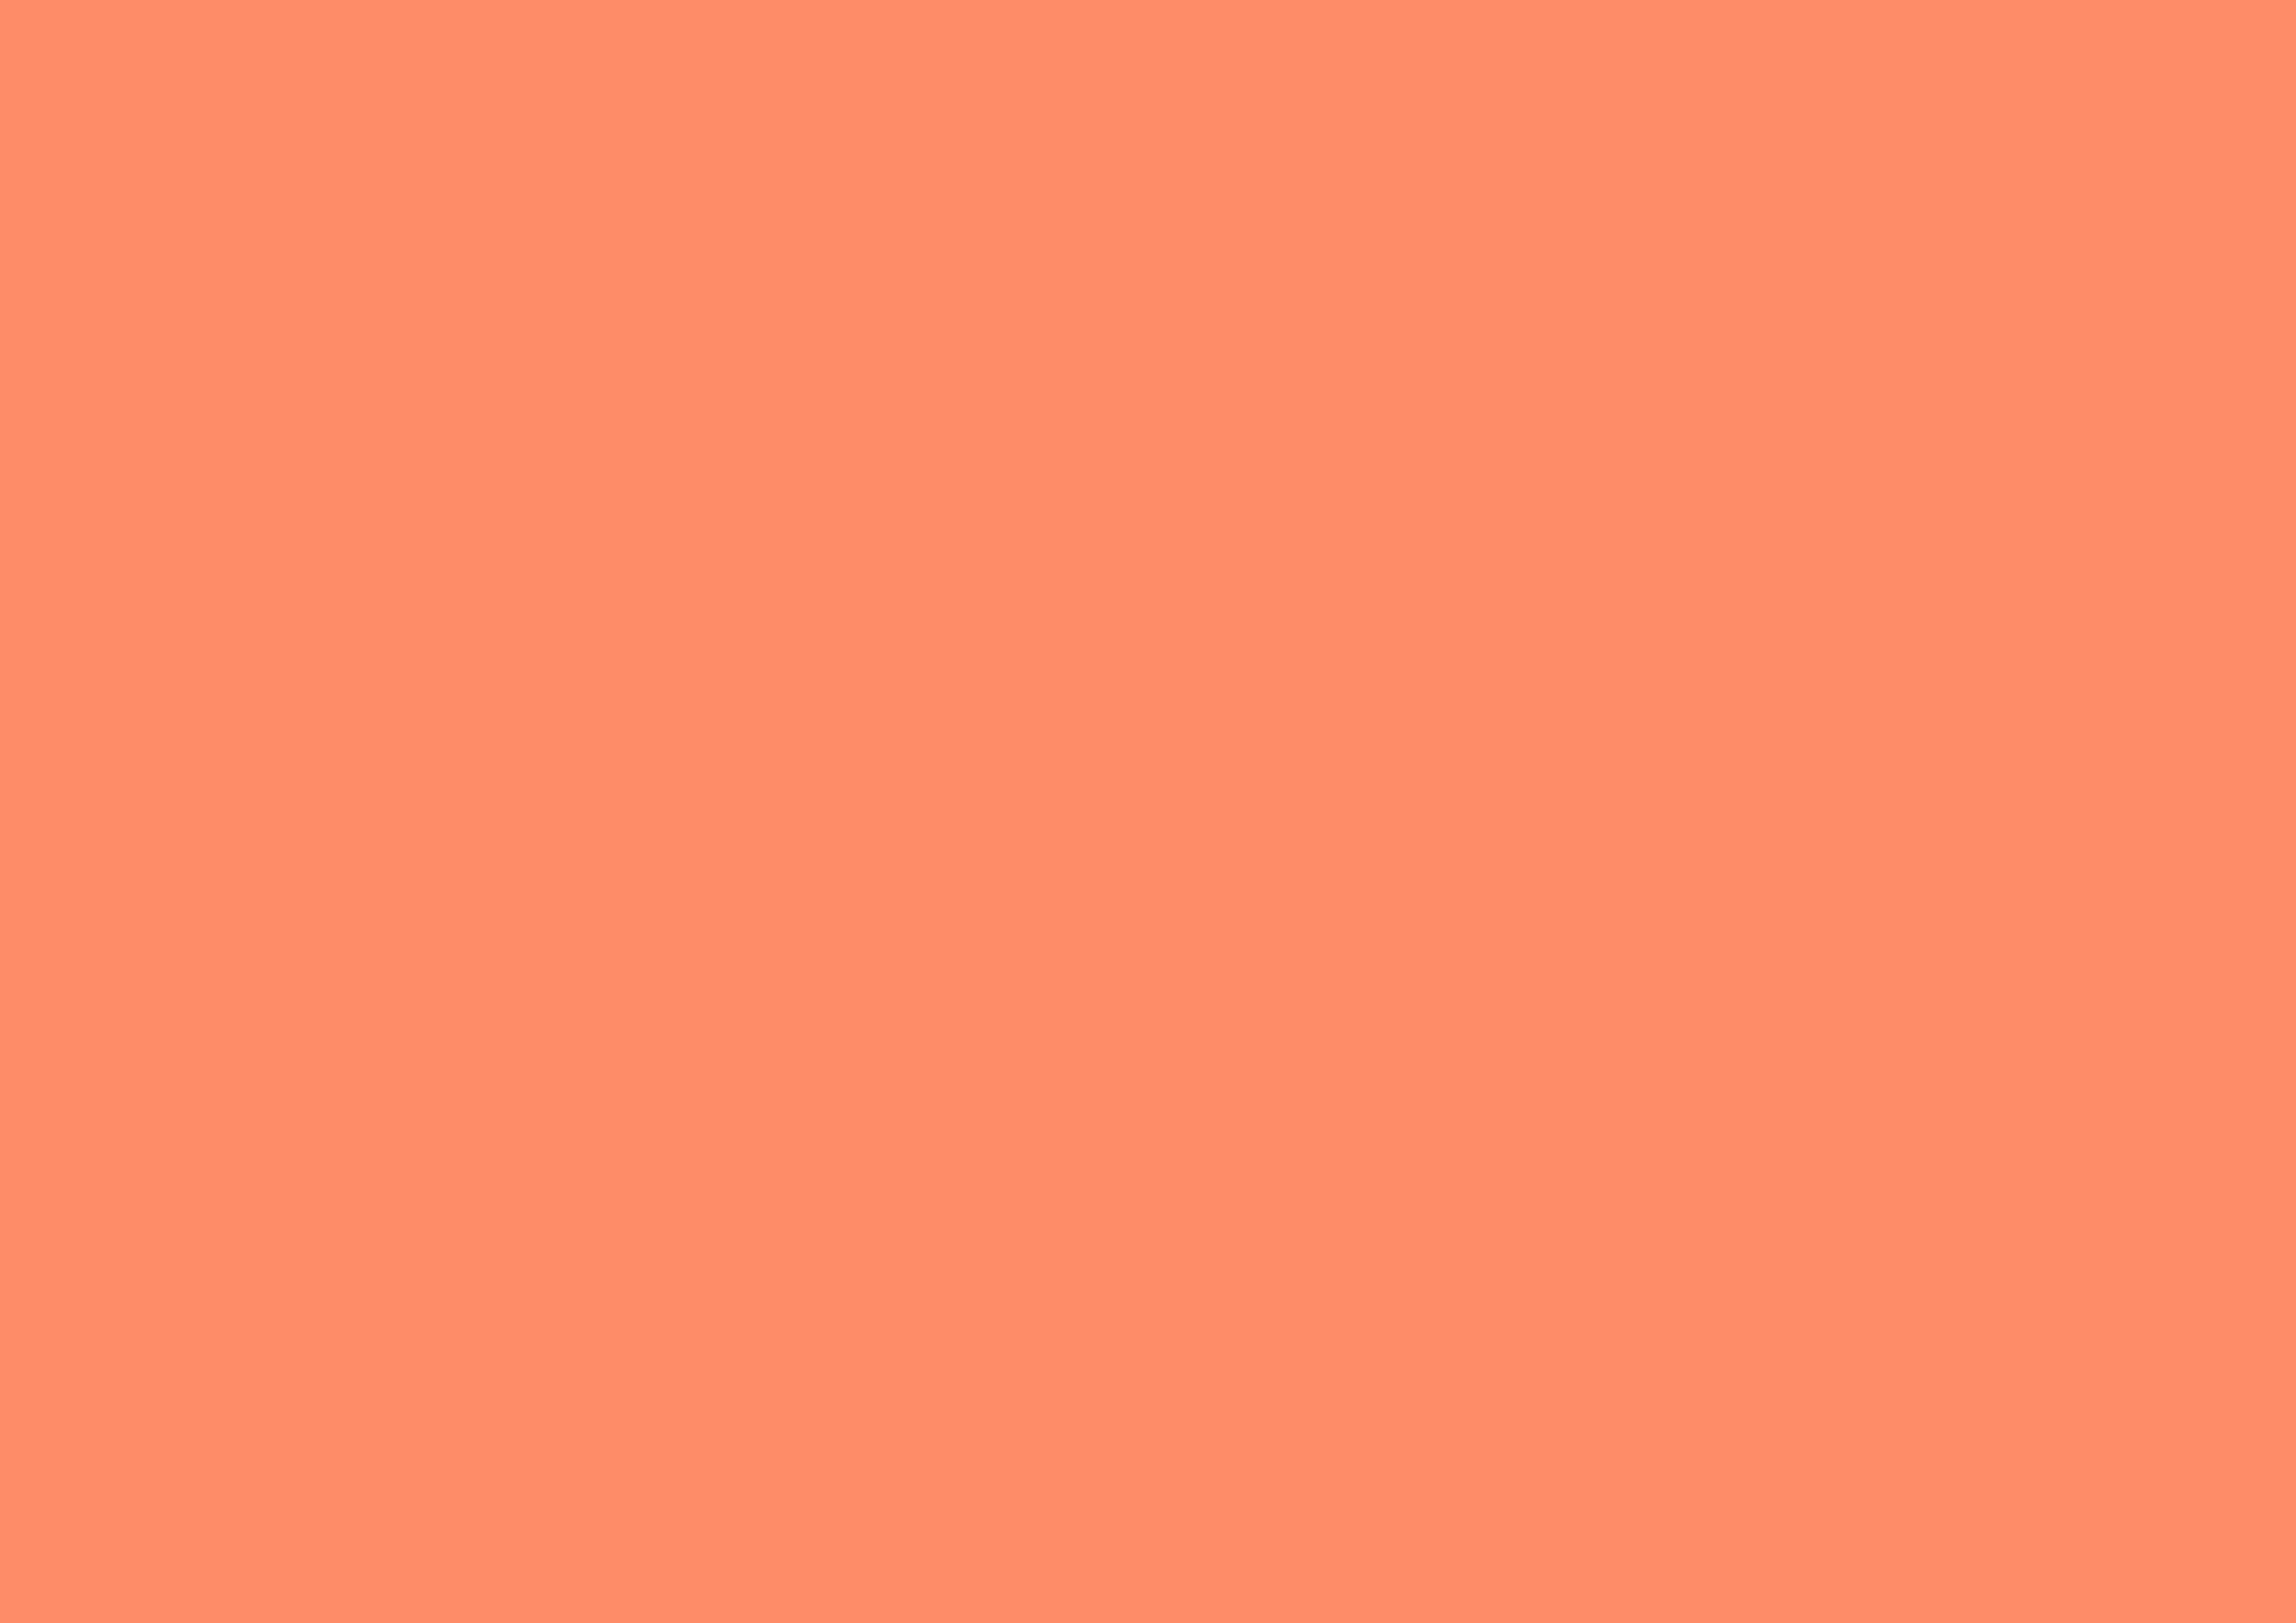 3508x2480 Salmon Solid Color Background